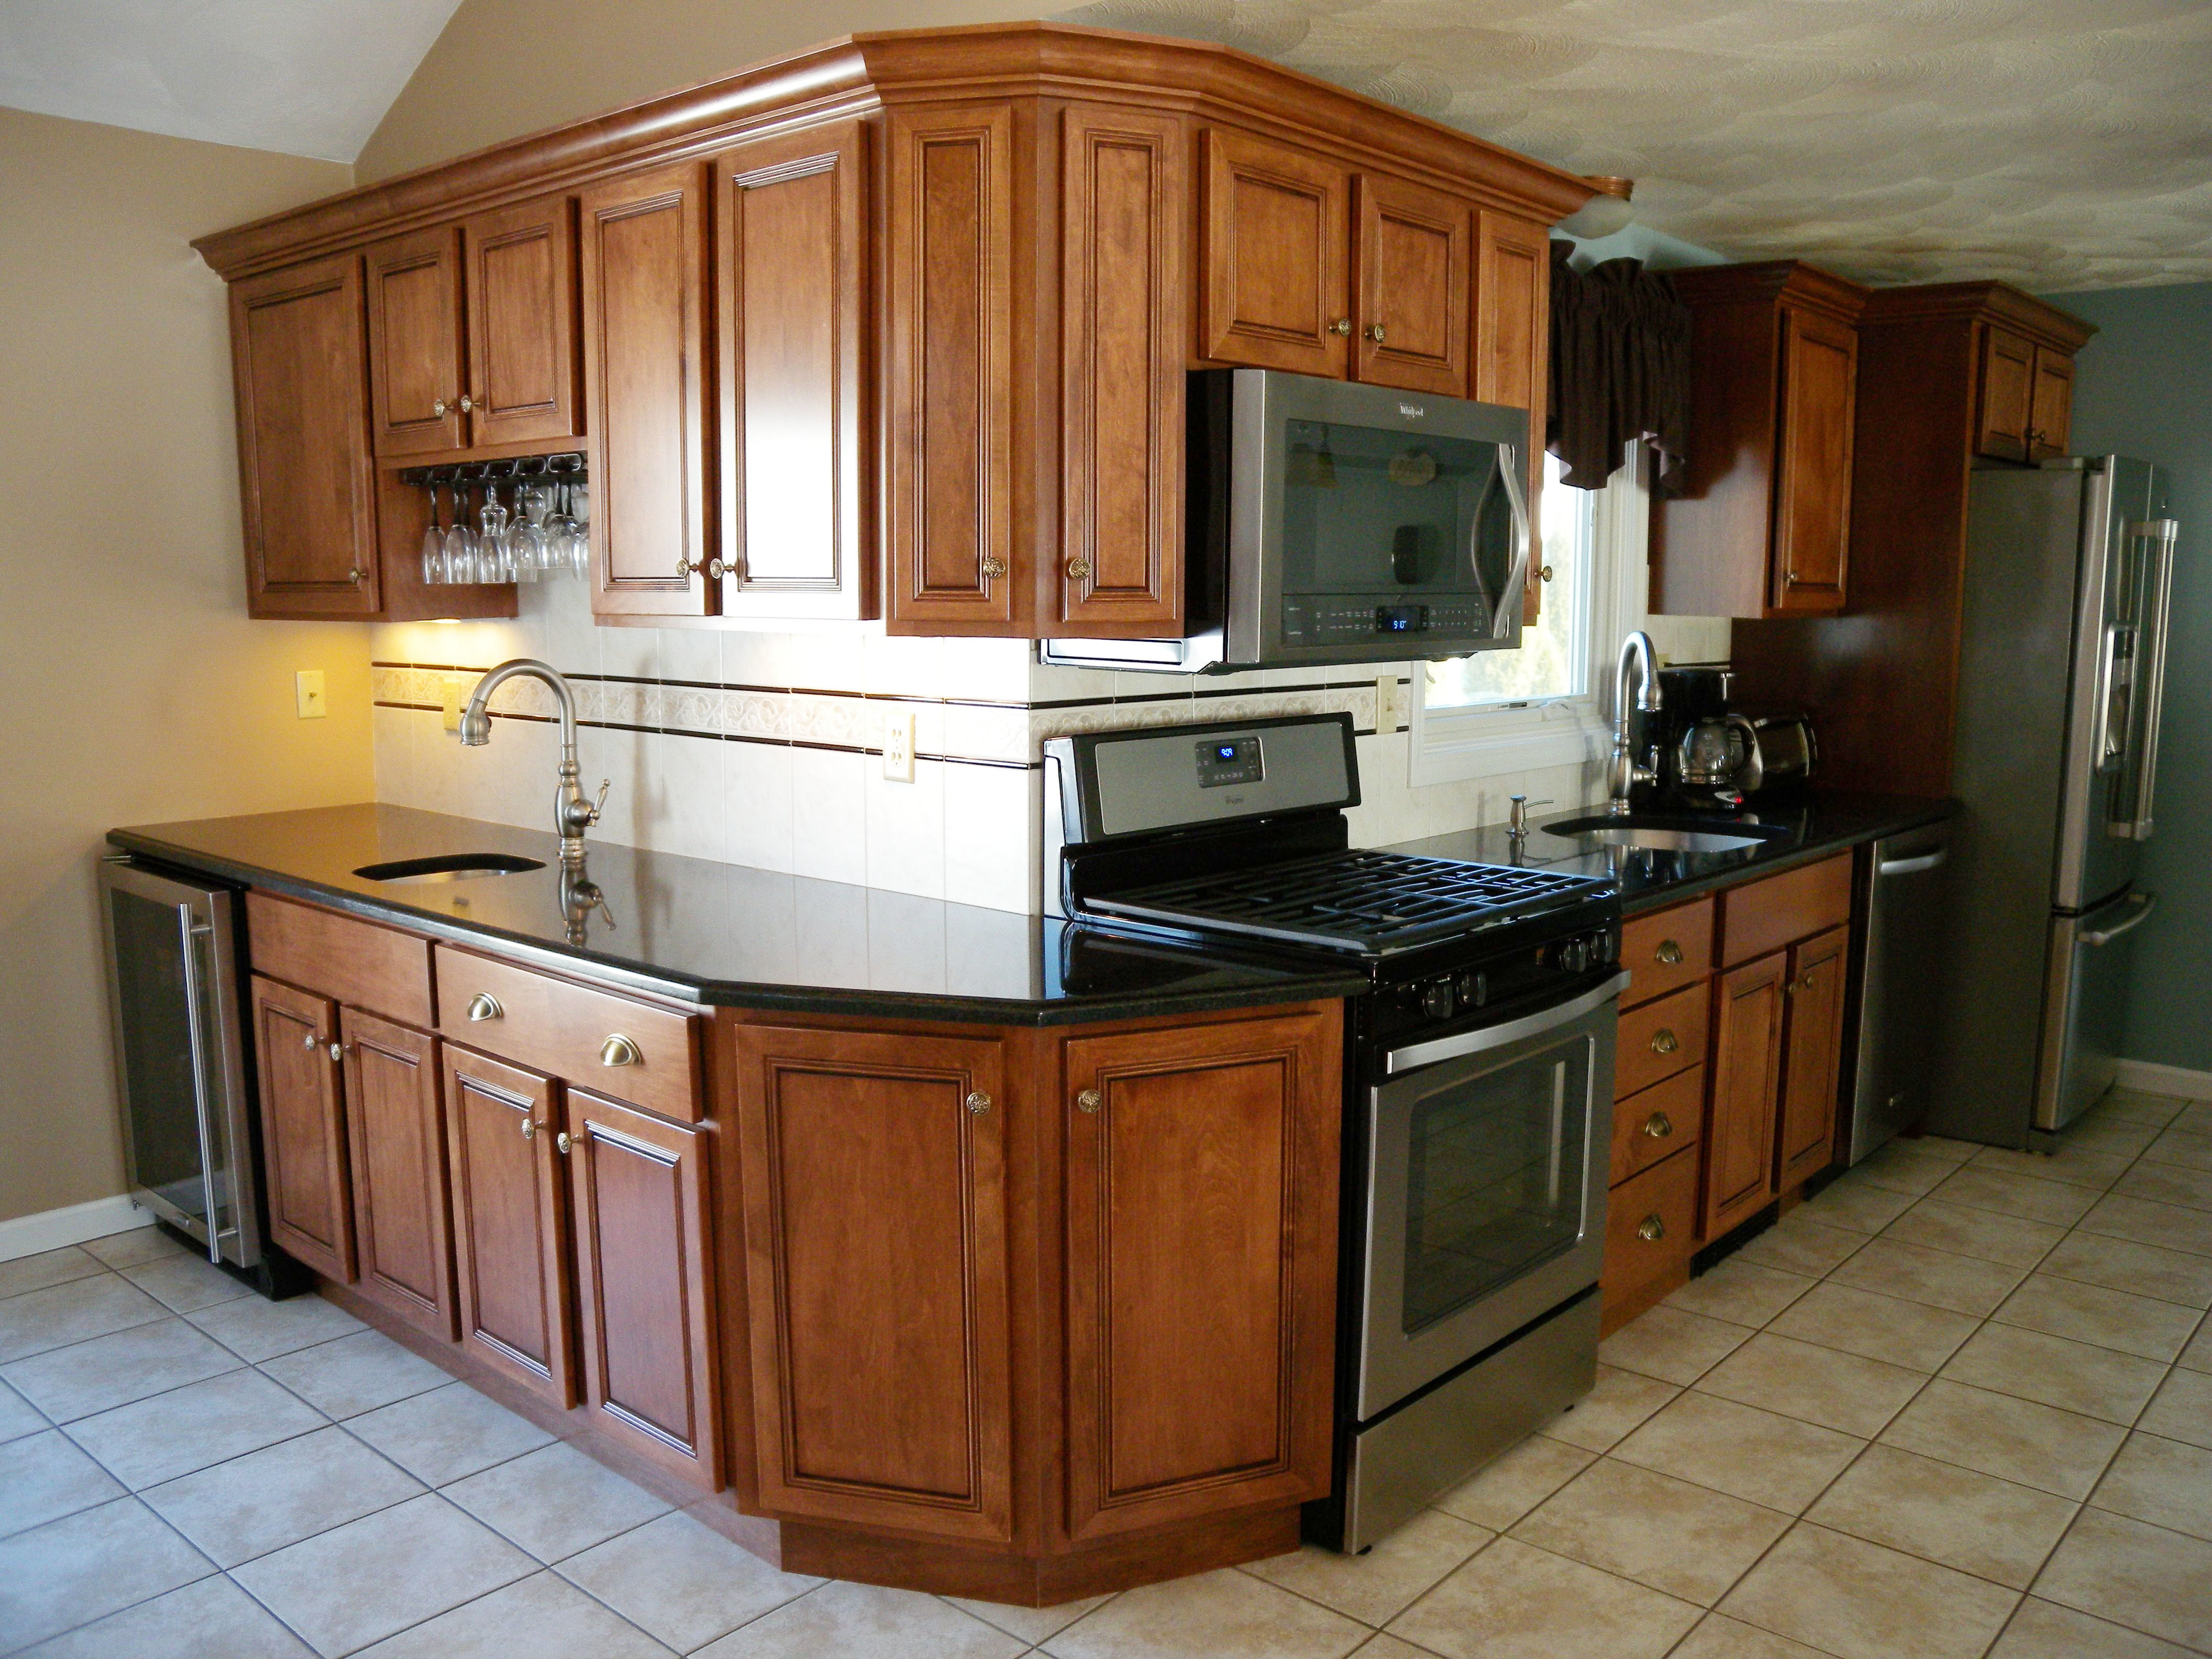 Plumbers In Londonderry Nh By Superpages  U003e Source. Derry Nh Cabinet  Refacing Contractors New Kitchen